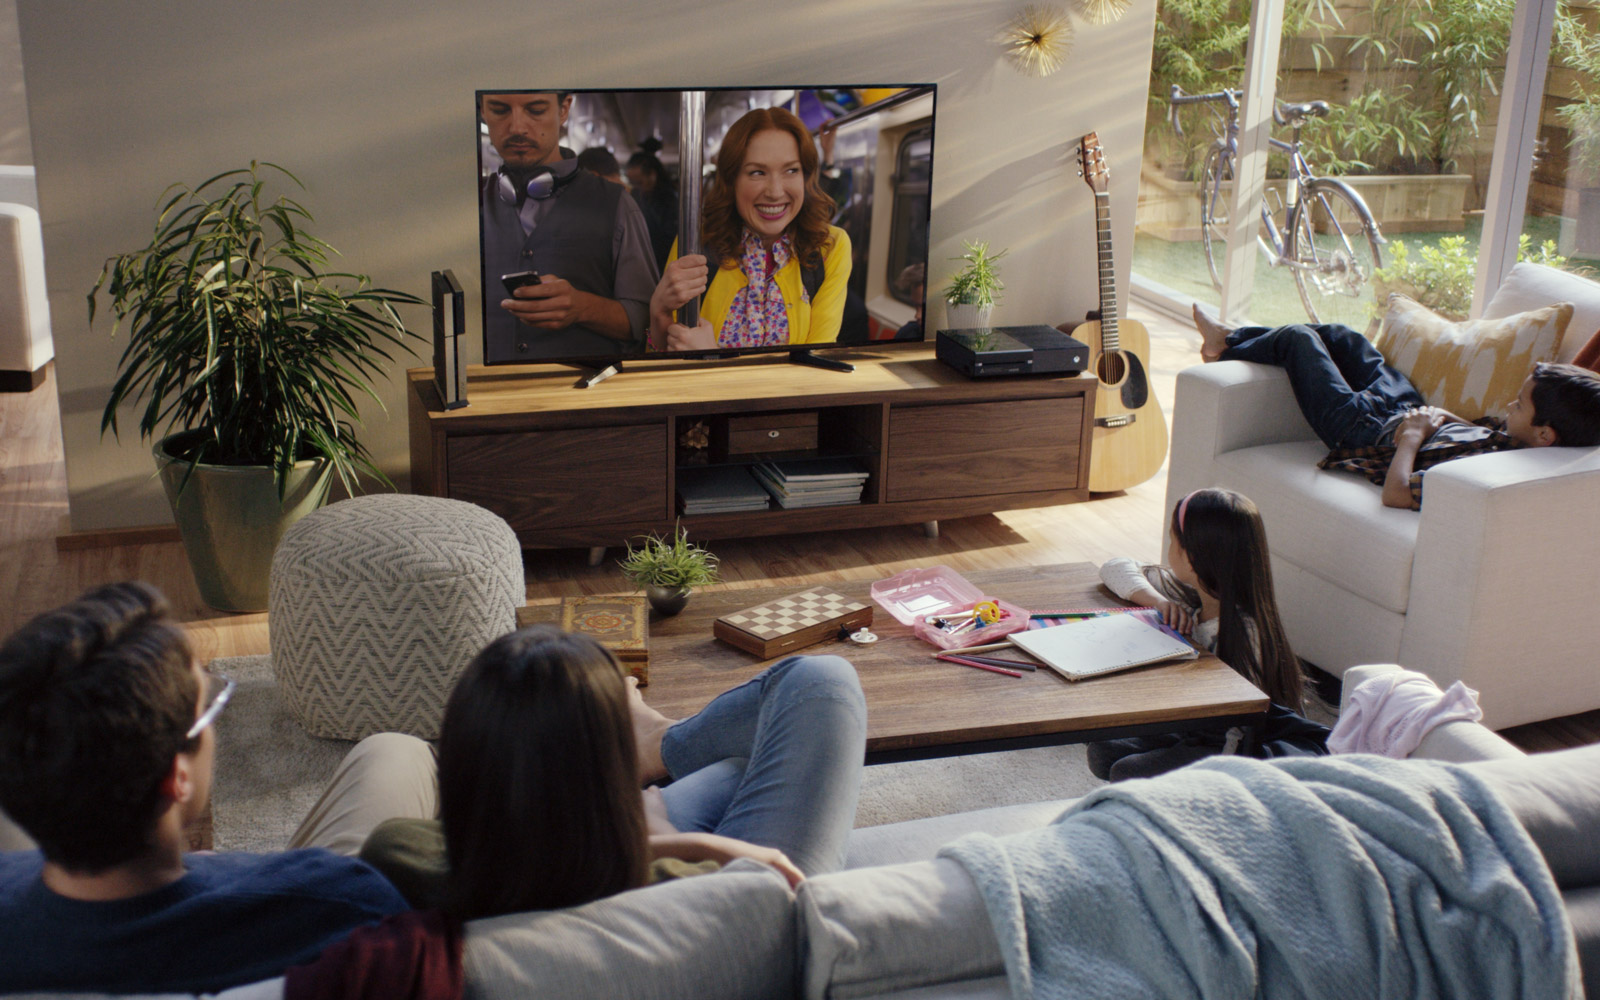 How to Get Free Netflix — Without Stealing Your Friend's Password